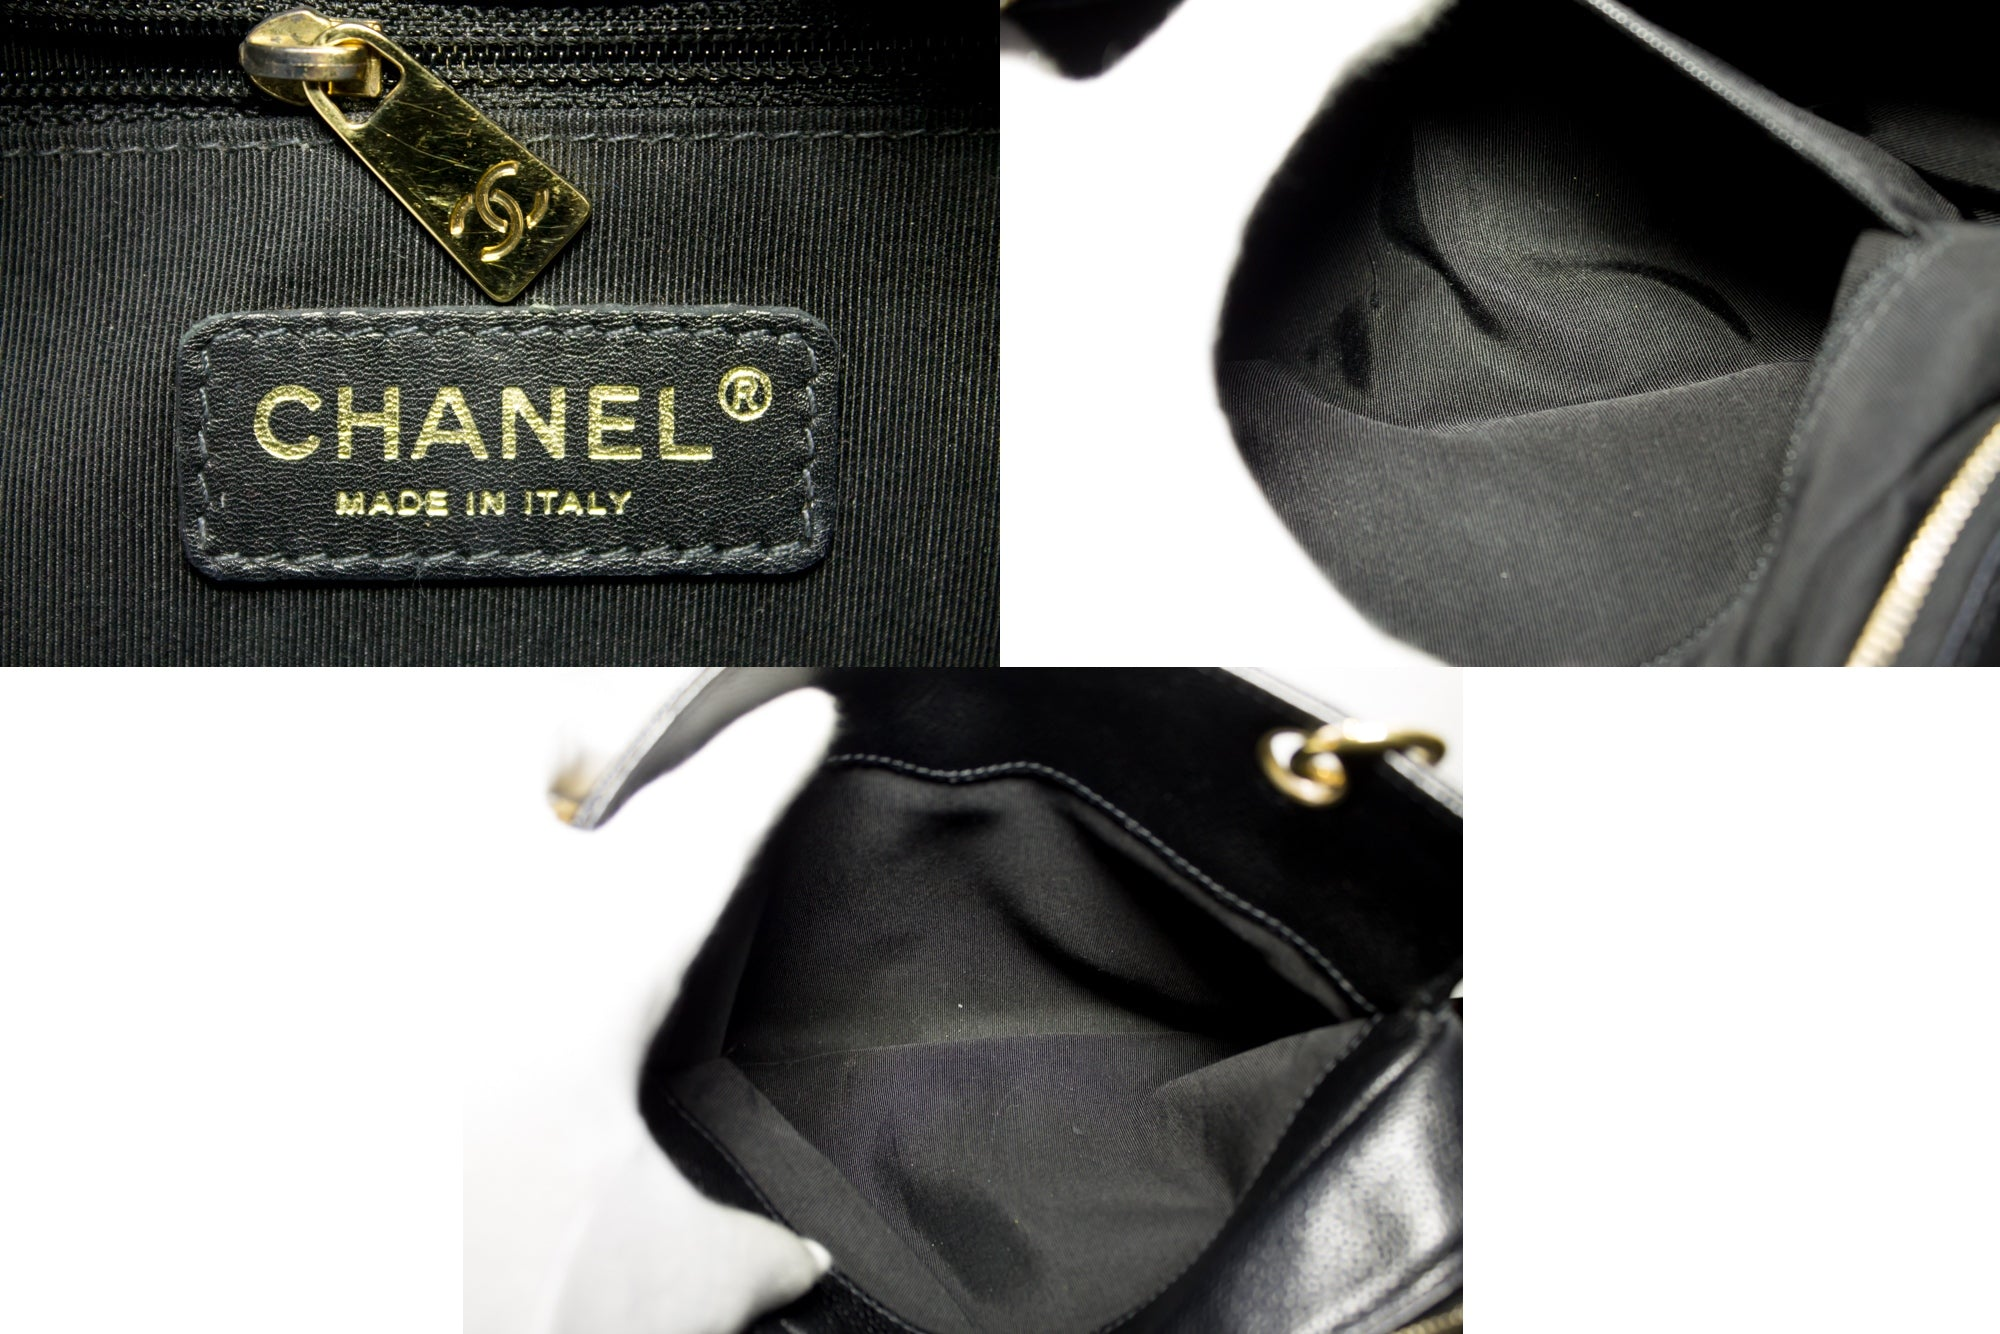 Chanel brooches are available on Vestiaire Collective.